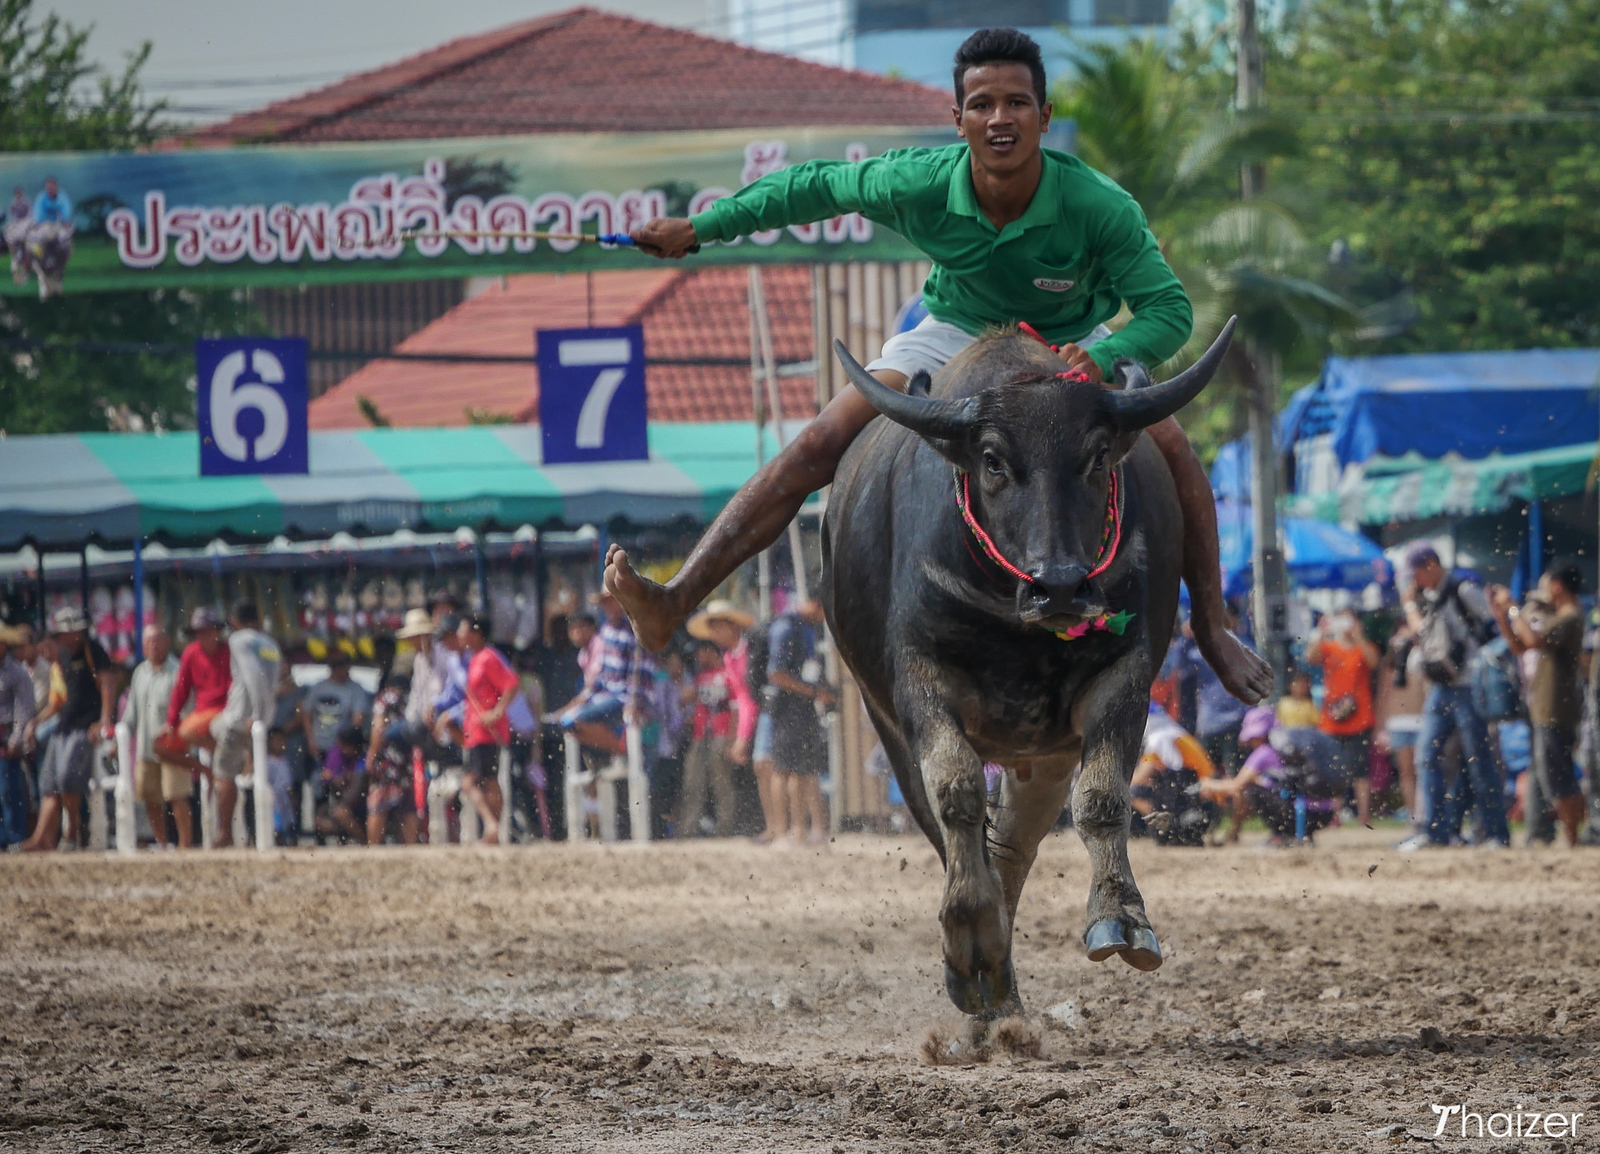 Chonburi Buffalo Racing Festival